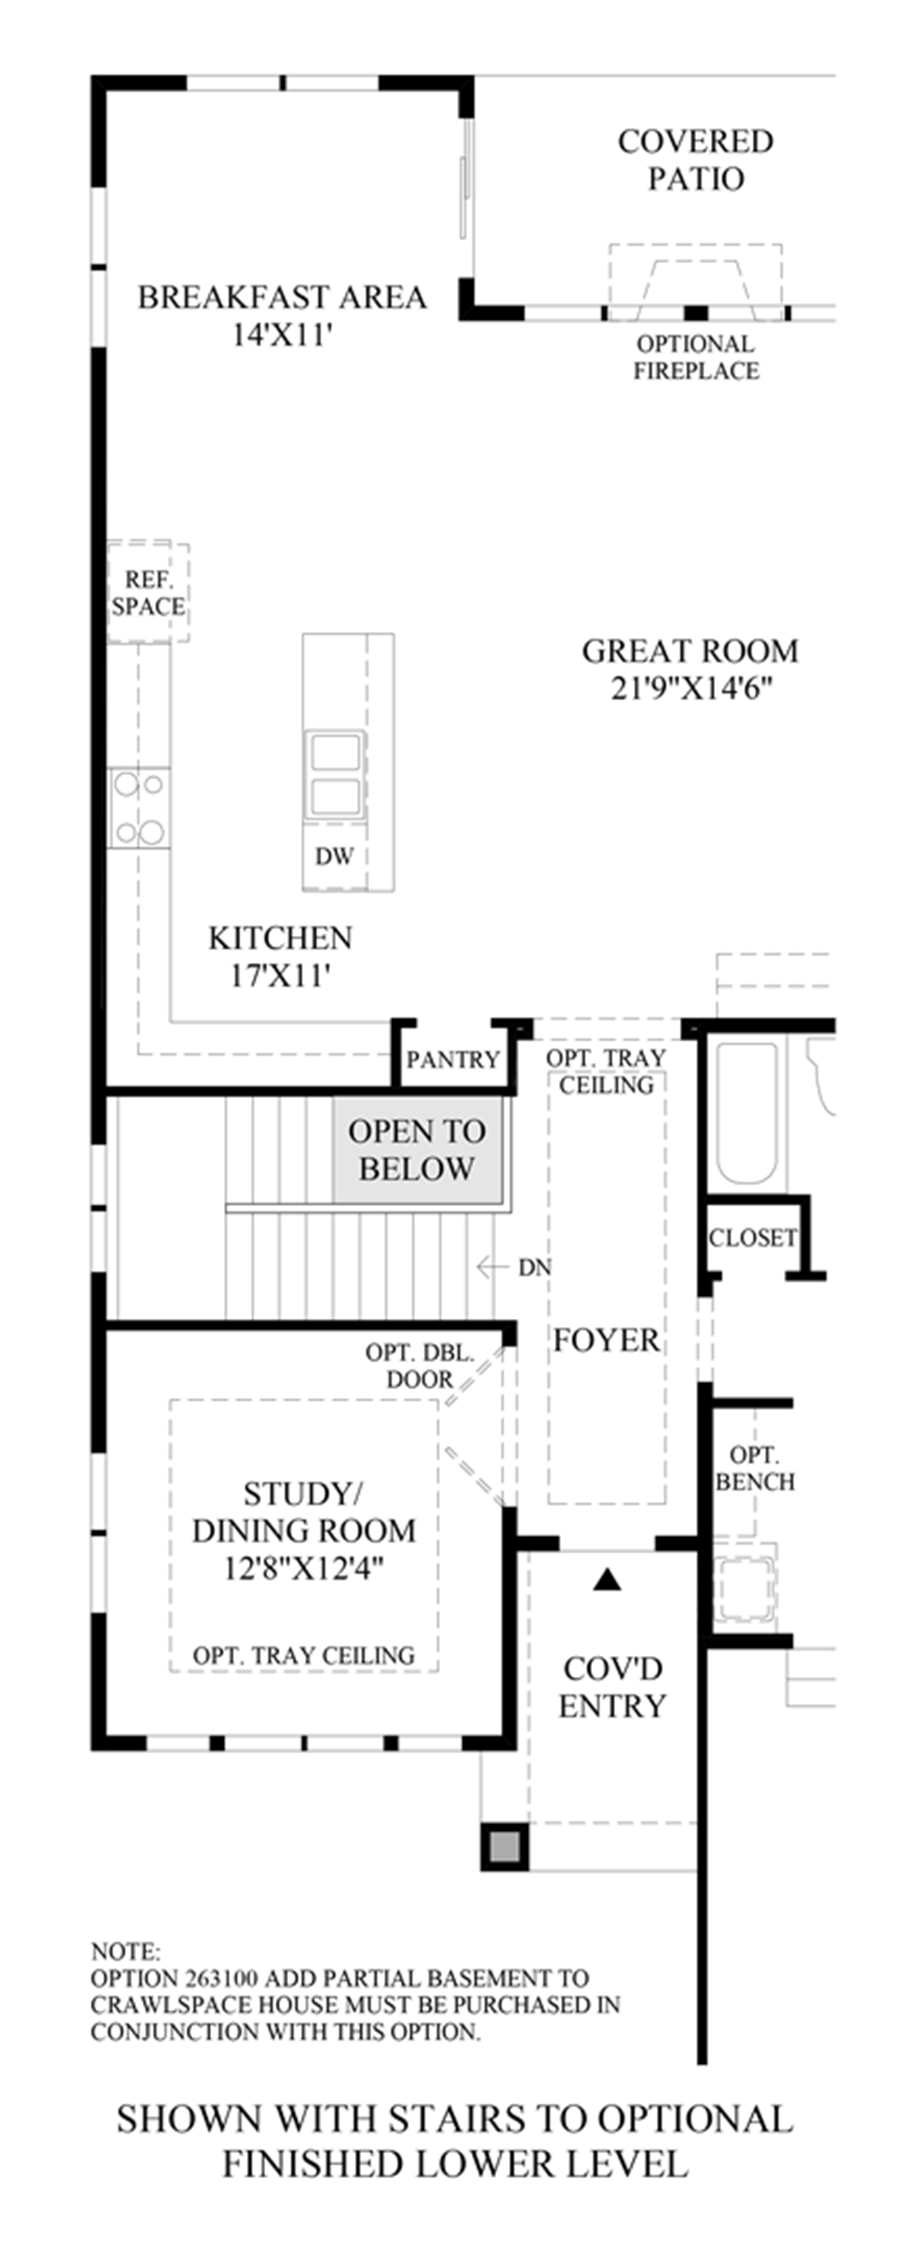 Stairs to Optional Finished Lower Level Floor Plan